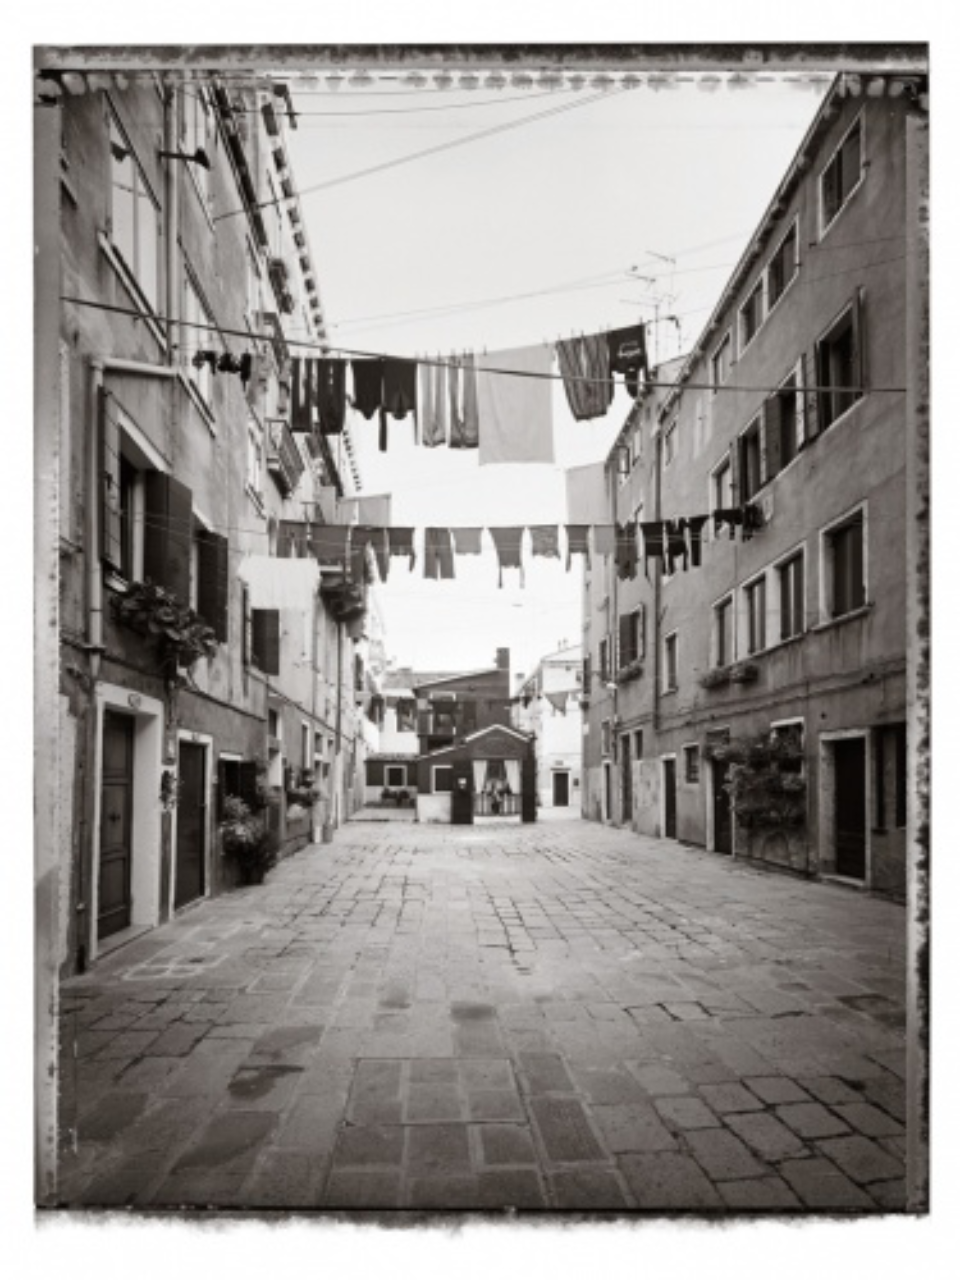 Christopher Thomas: Corte de ca Sarasina 2010 venice in solitude